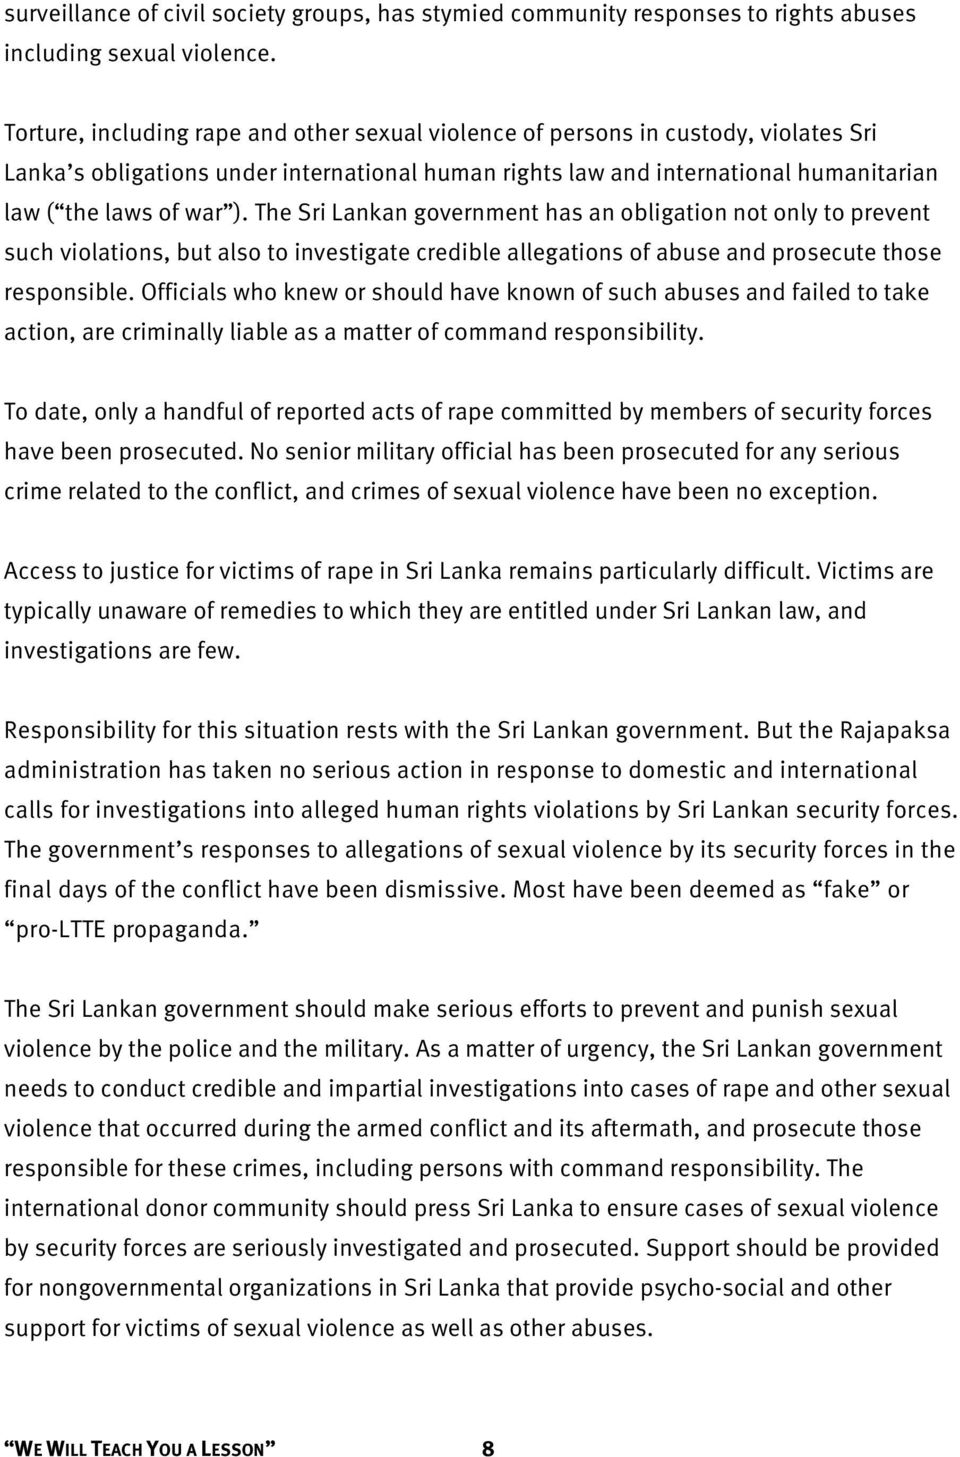 The Sri Lankan government has an obligation not only to prevent such violations, but also to investigate credible allegations of abuse and prosecute those responsible.